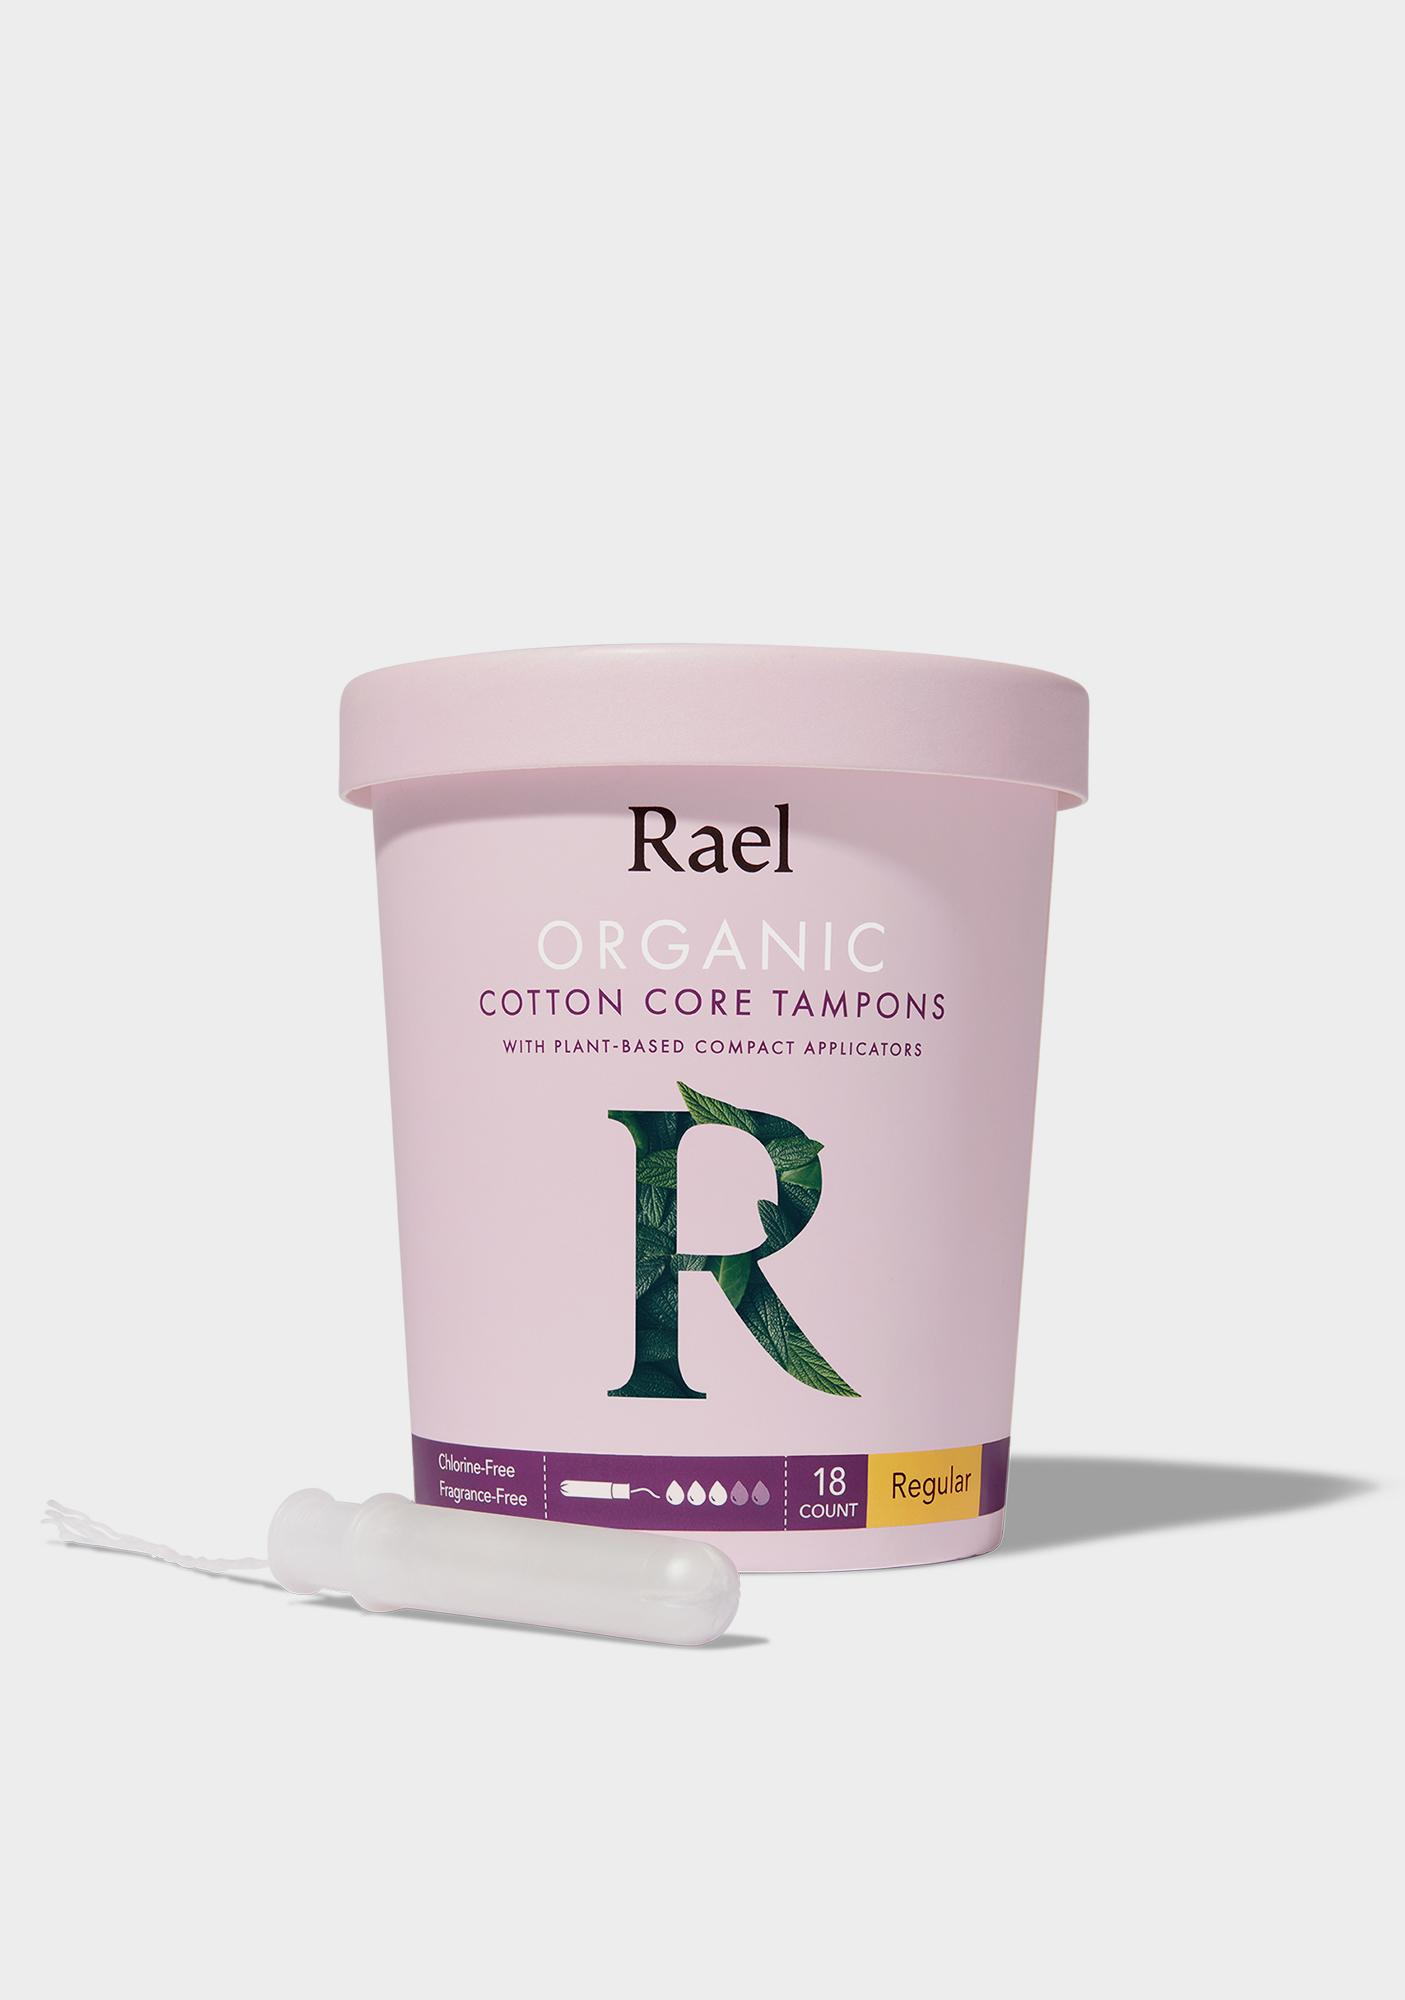 Rael Regular Organic Cotton Tampons With Plant-Based Applicators